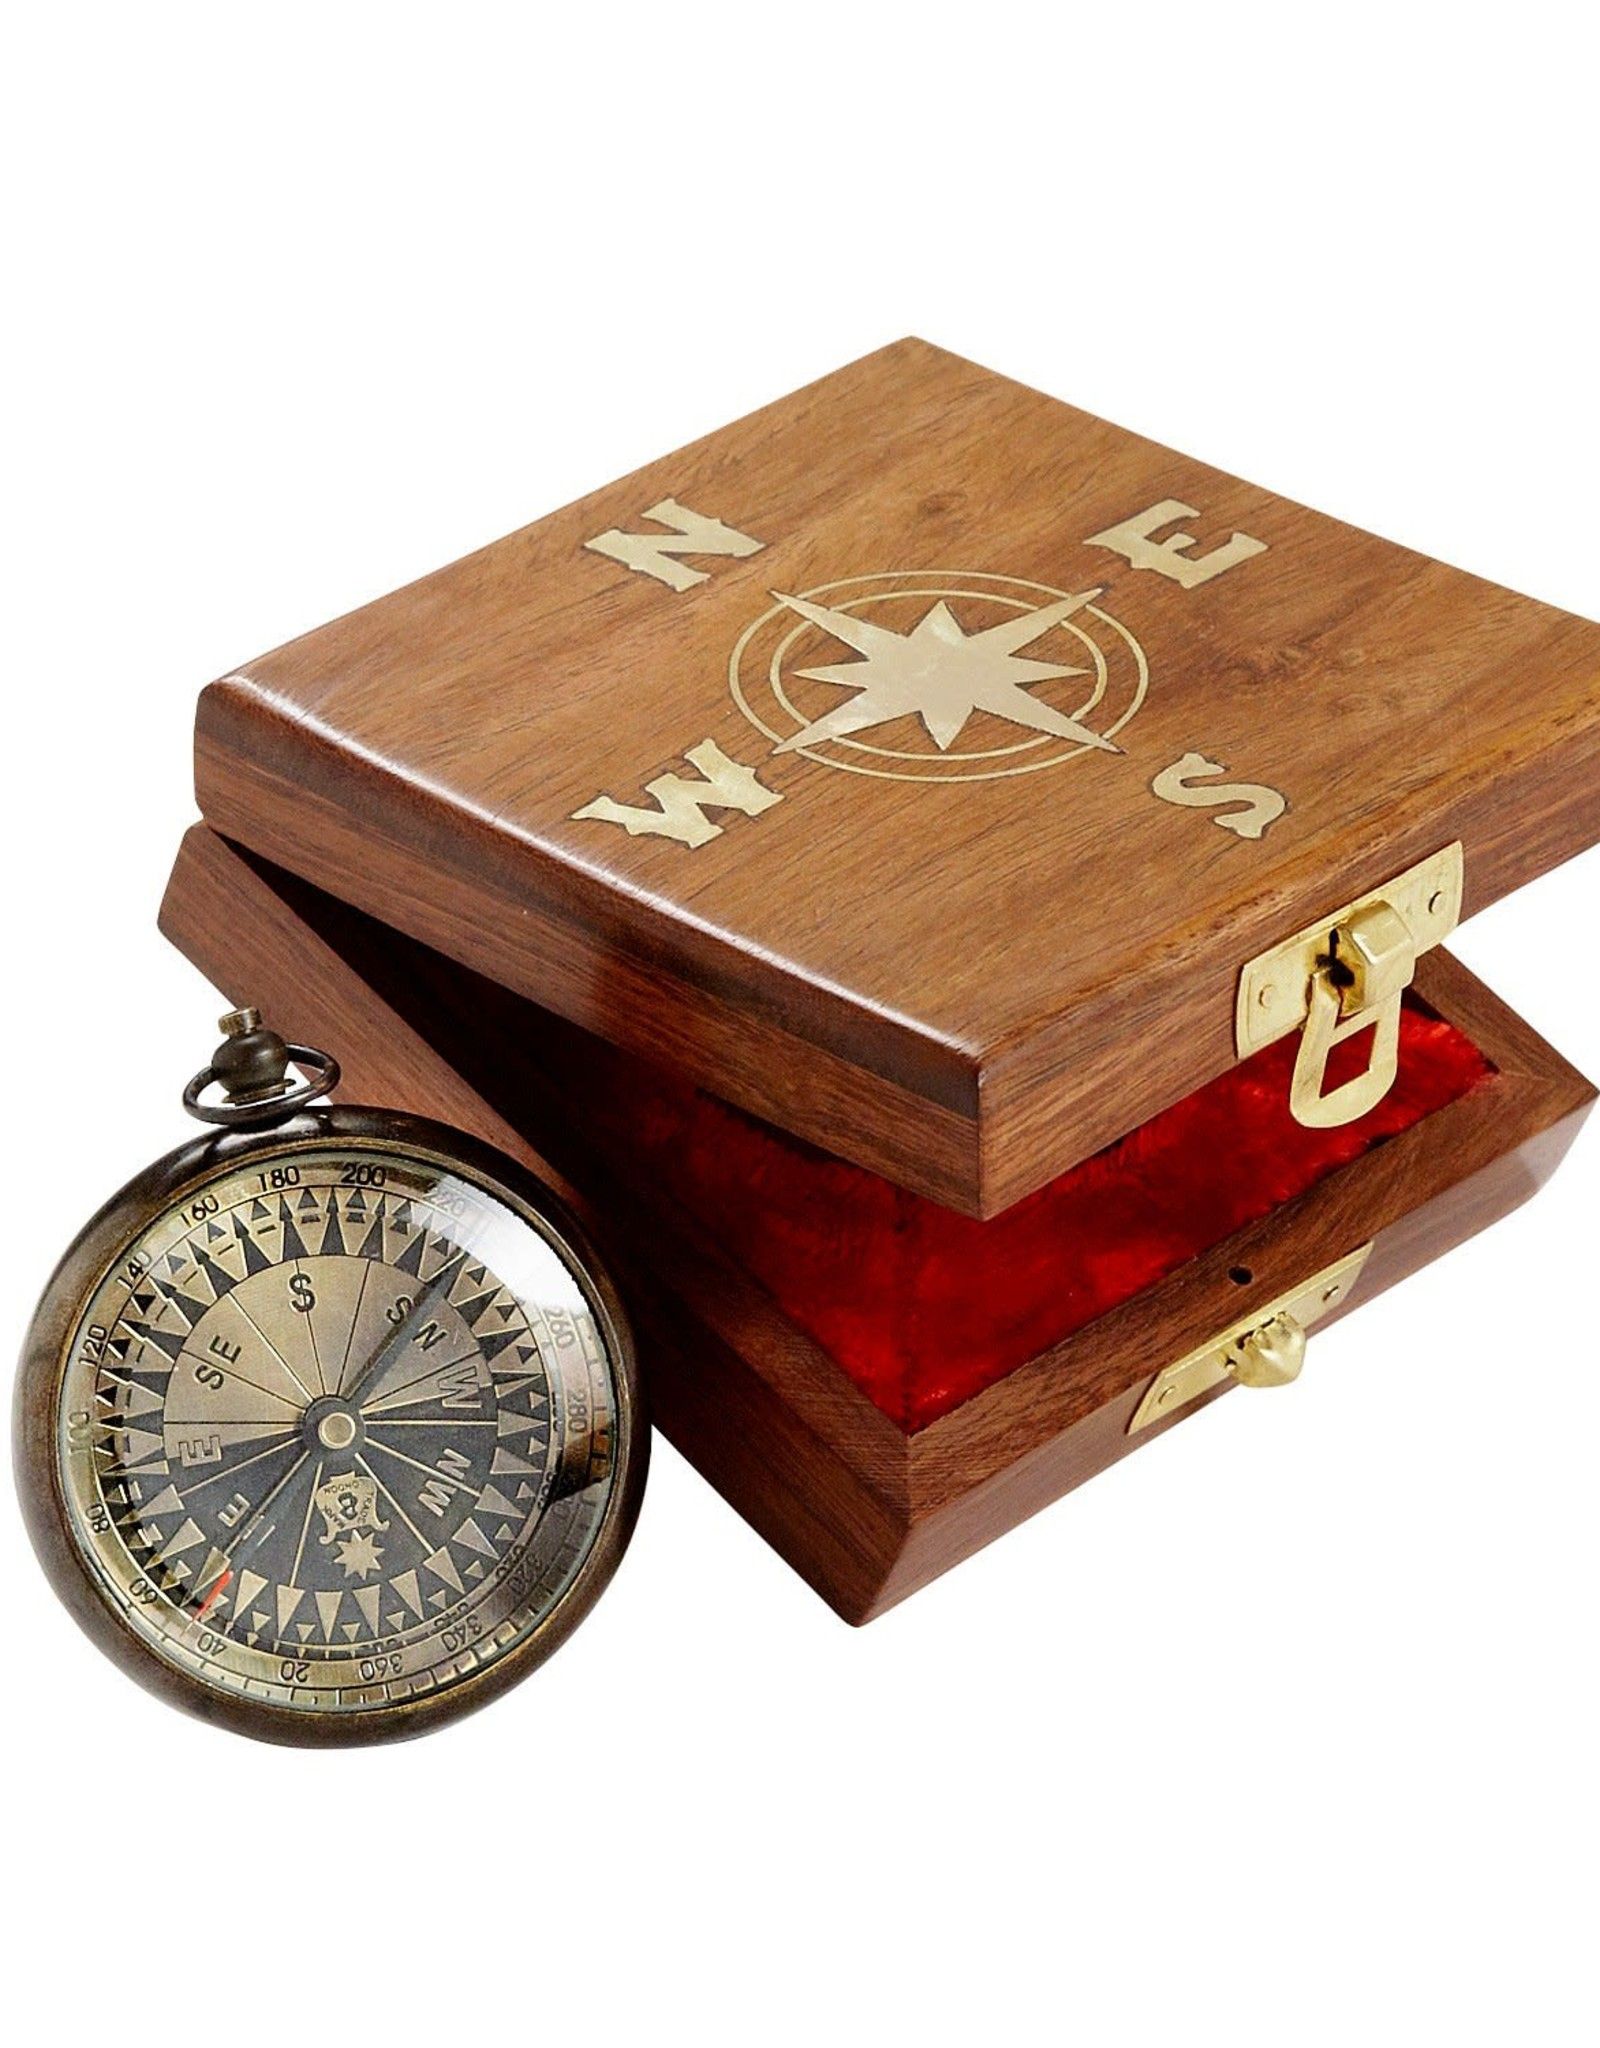 India, True North Compass in Wood Box